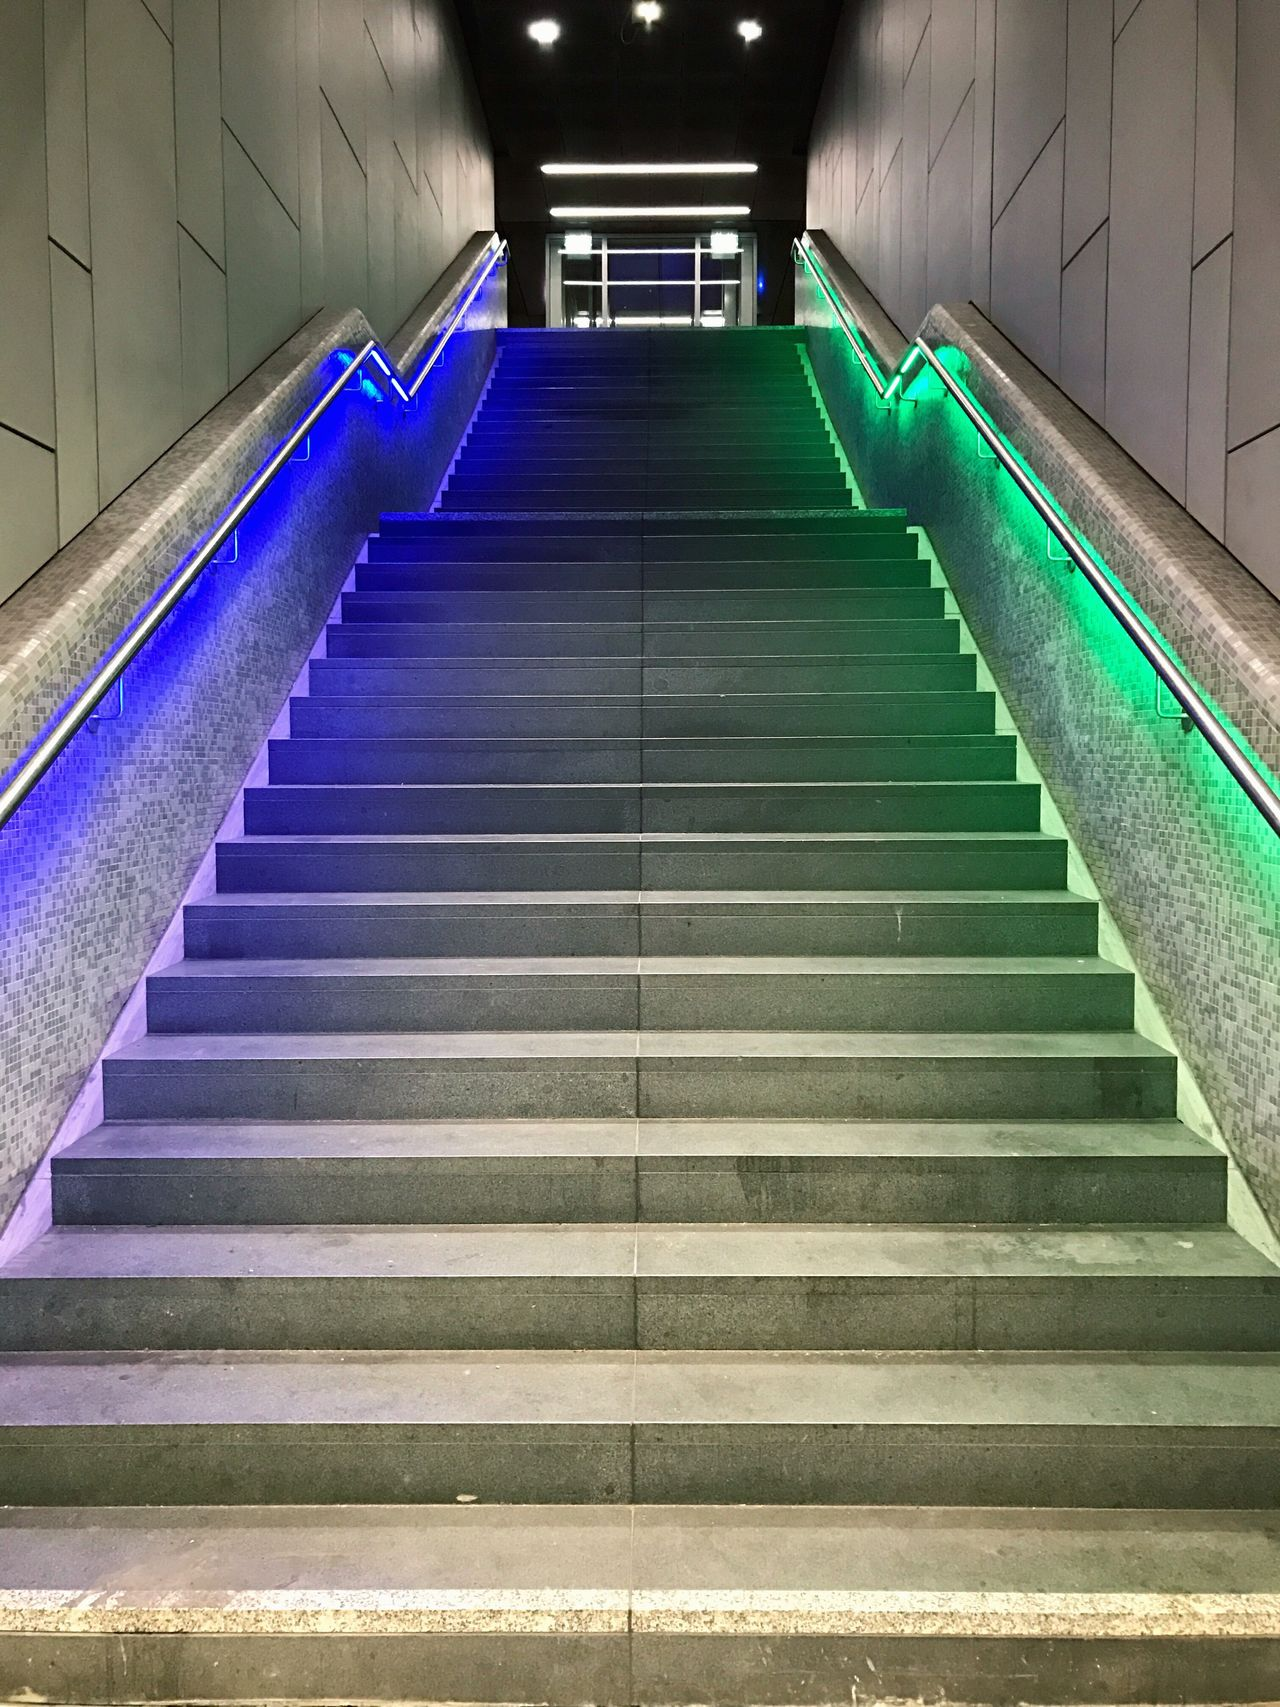 FFM '16 Train Station Frankfurt Main Indoors  Blue Green Light Stairs Architecture Underground Mysterious No People EyeEm Best Shots Eyeemphotography Concrete Steel Handlebar The Way Forward Stairway To Heaven Light And Shadow Colourful Unknown Illuminated Nightlife